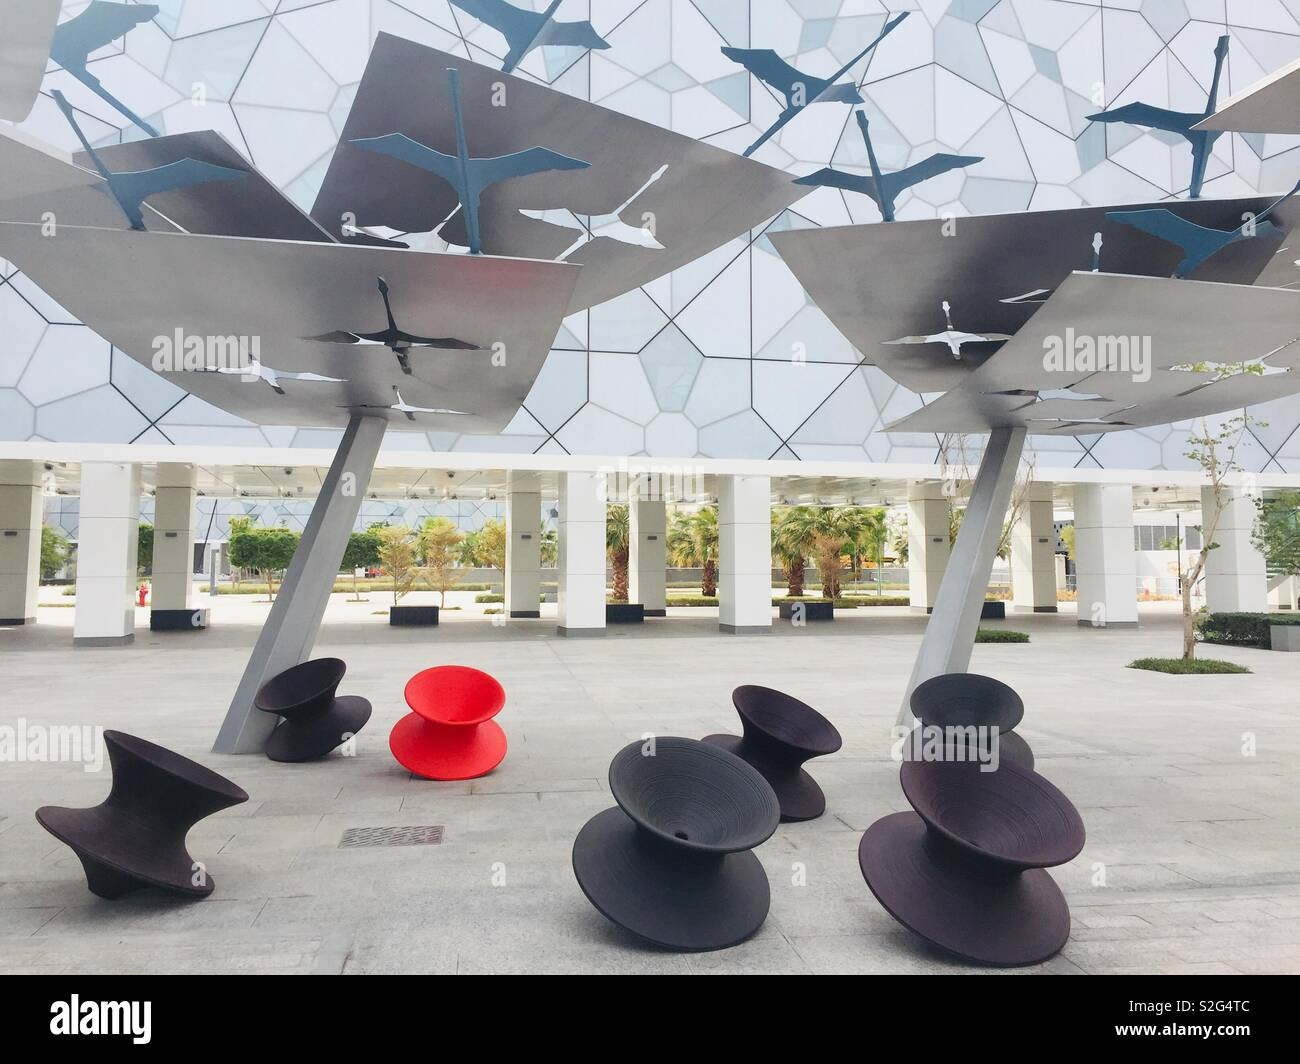 Sculpture in grounds of new Sheikh Abdullah al Salem Cultural Centre in Kuwait City, Kuwait - Stock Image